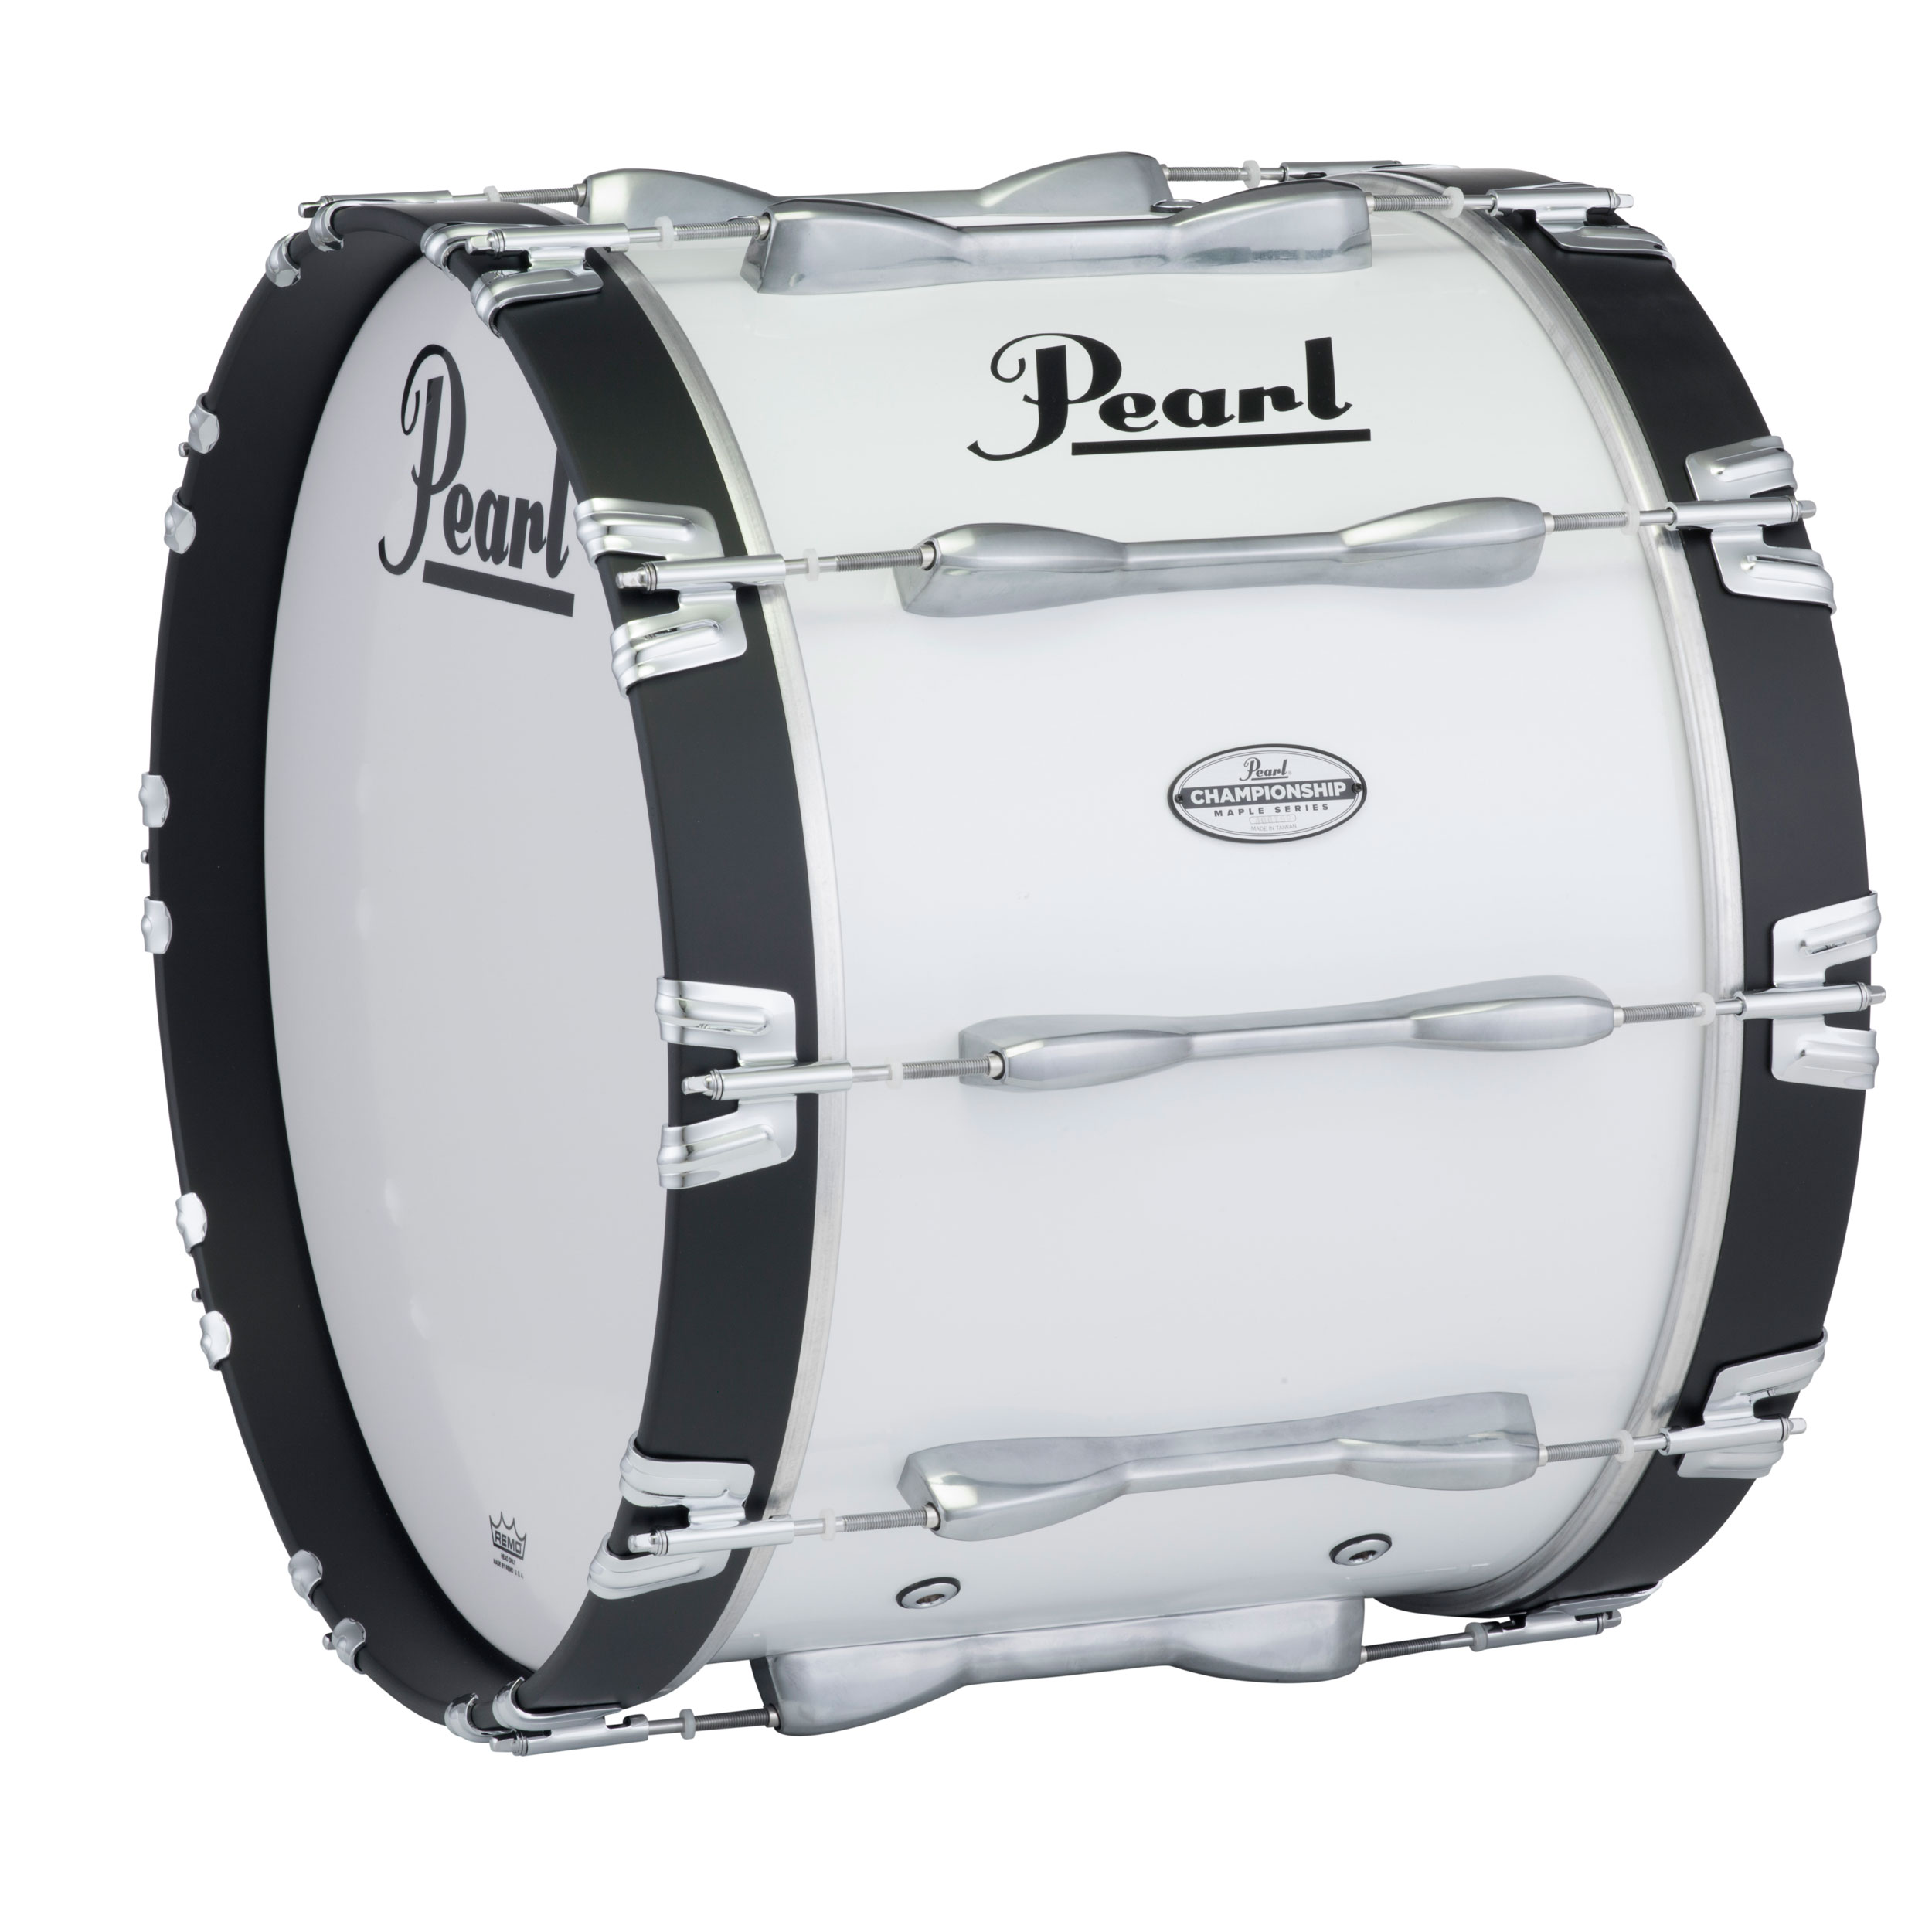 "Pearl 18"" PBDM Championship Maple Marching Bass Drum in Wrap Finish"